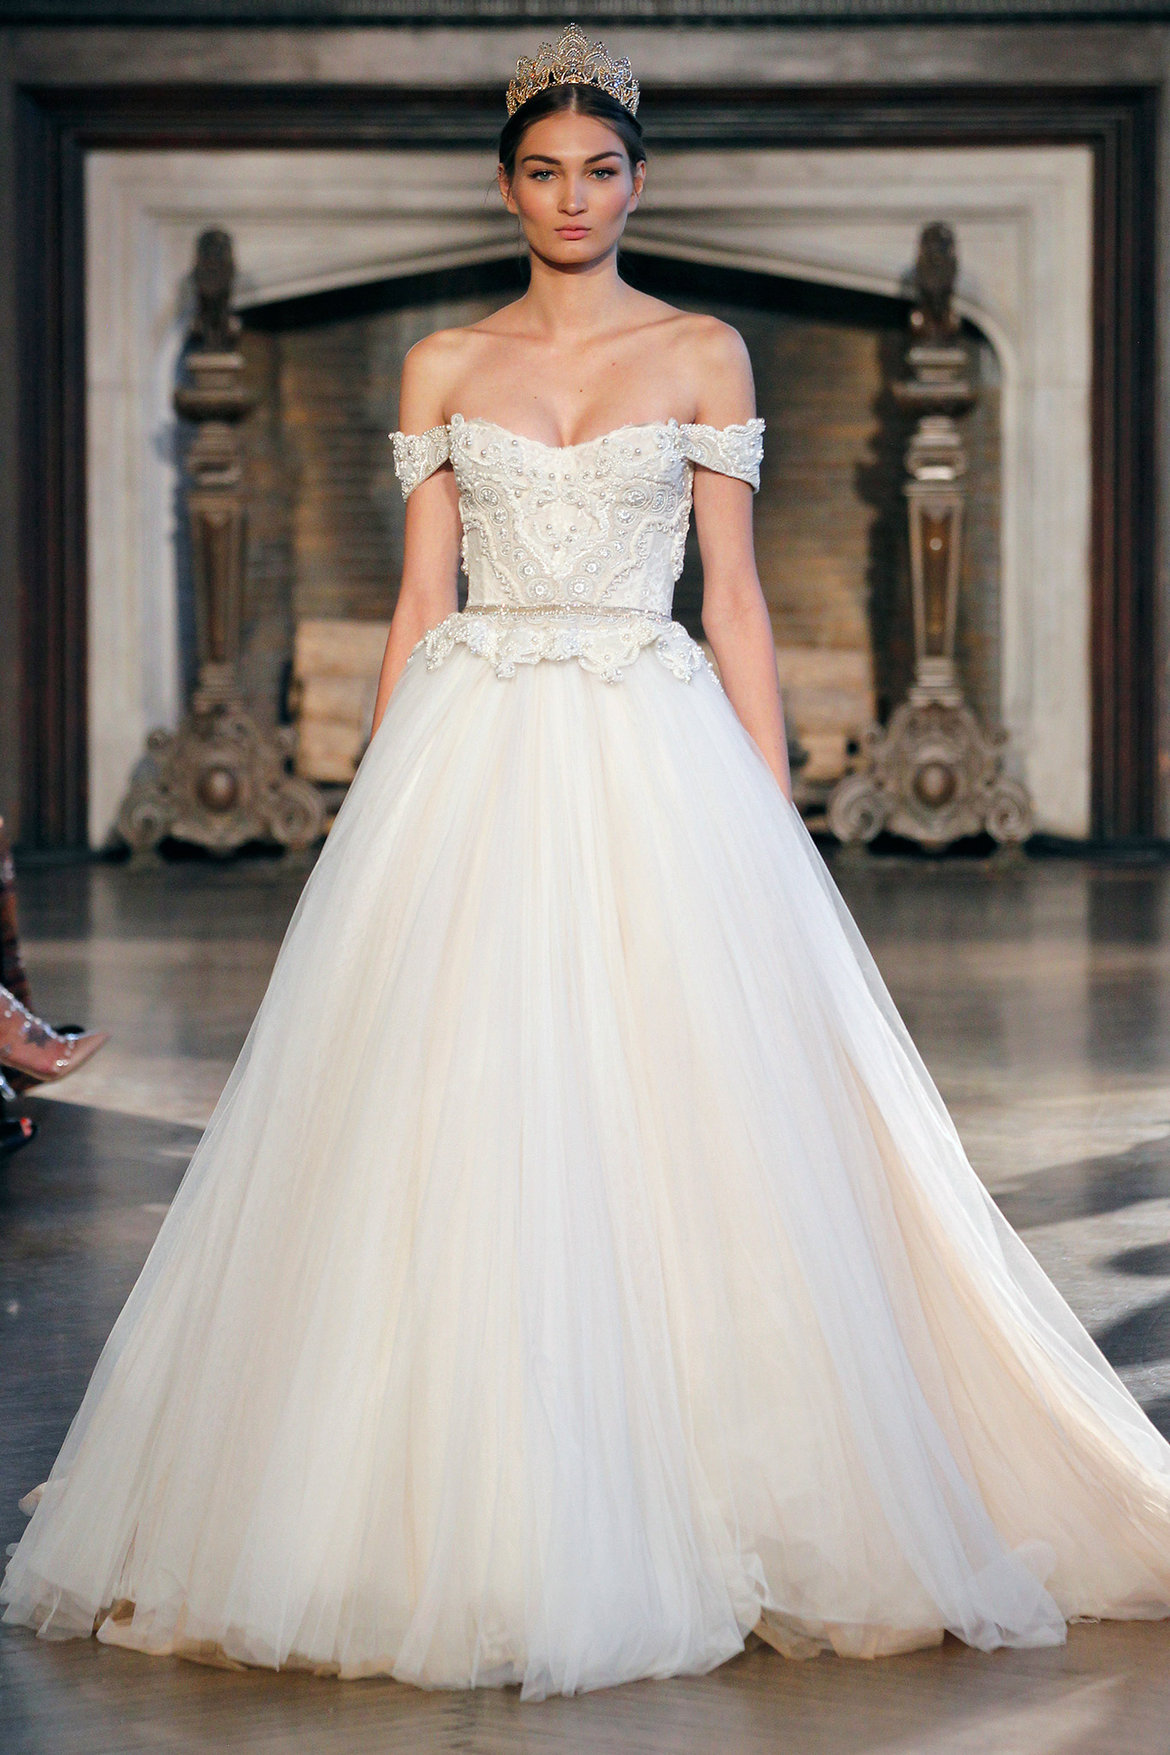 Spring Bridal Gown Trends for Petite Women | London Design Collective